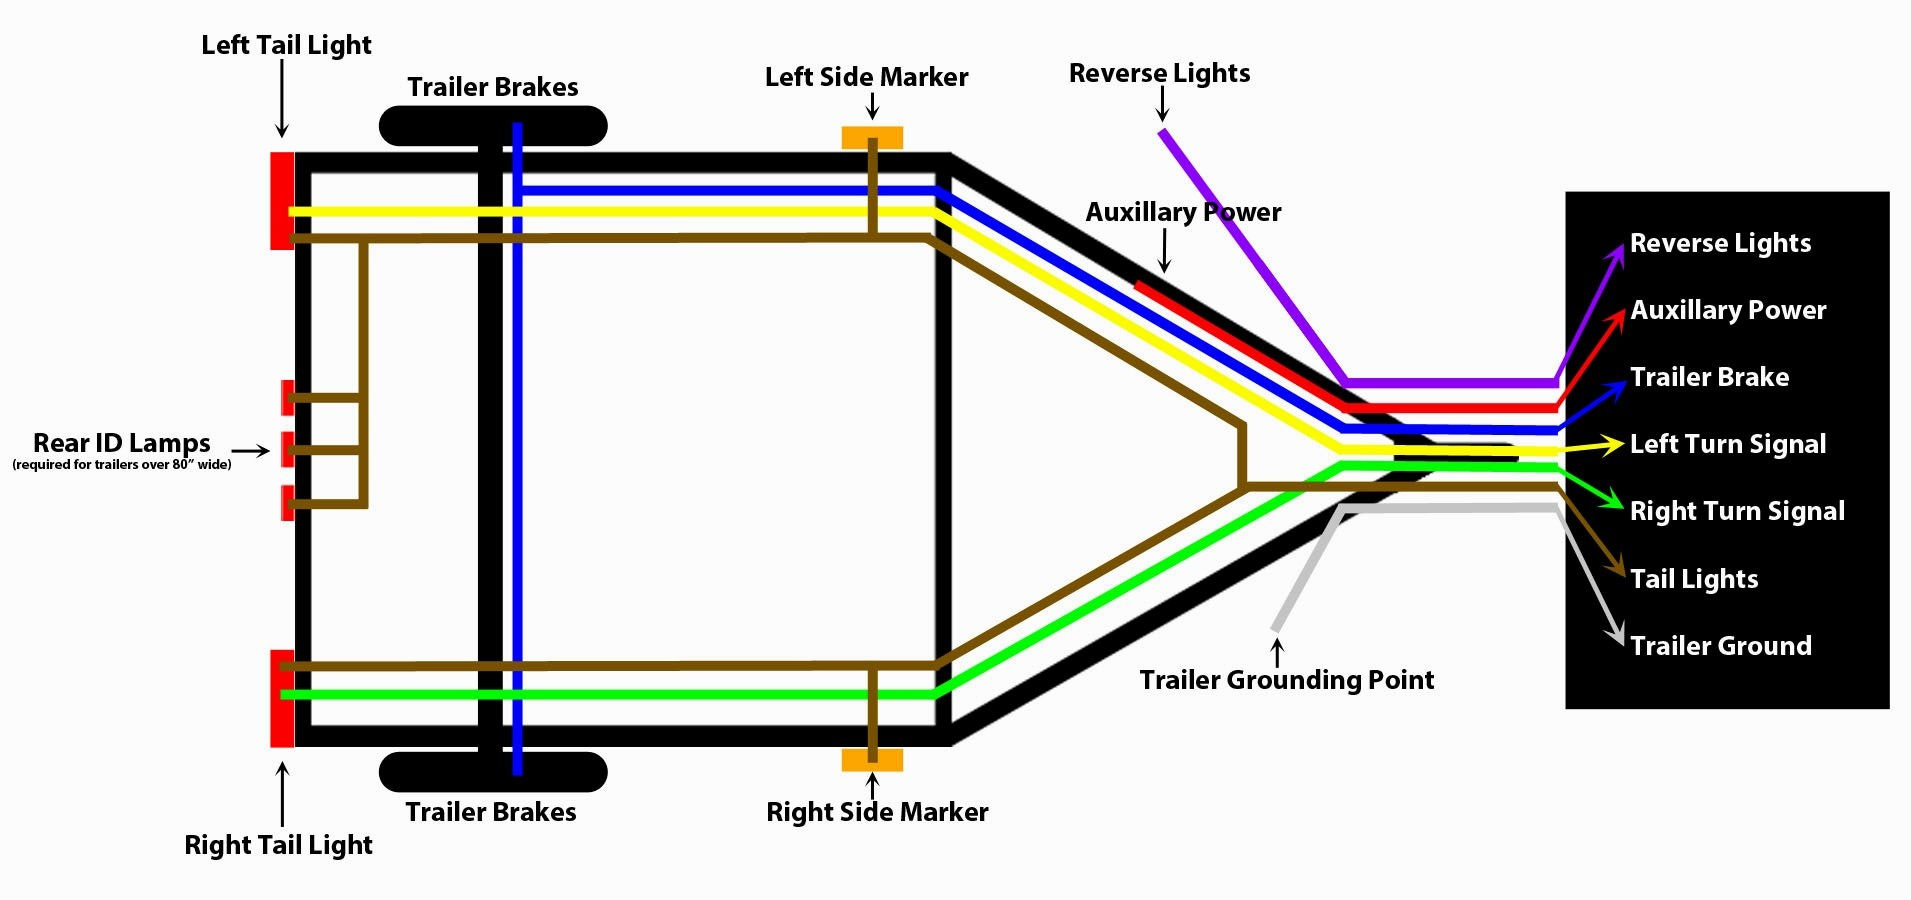 Featherlite Trailers Wiring Diagrams | Wiring Library - Hart Trailer Wiring Diagram